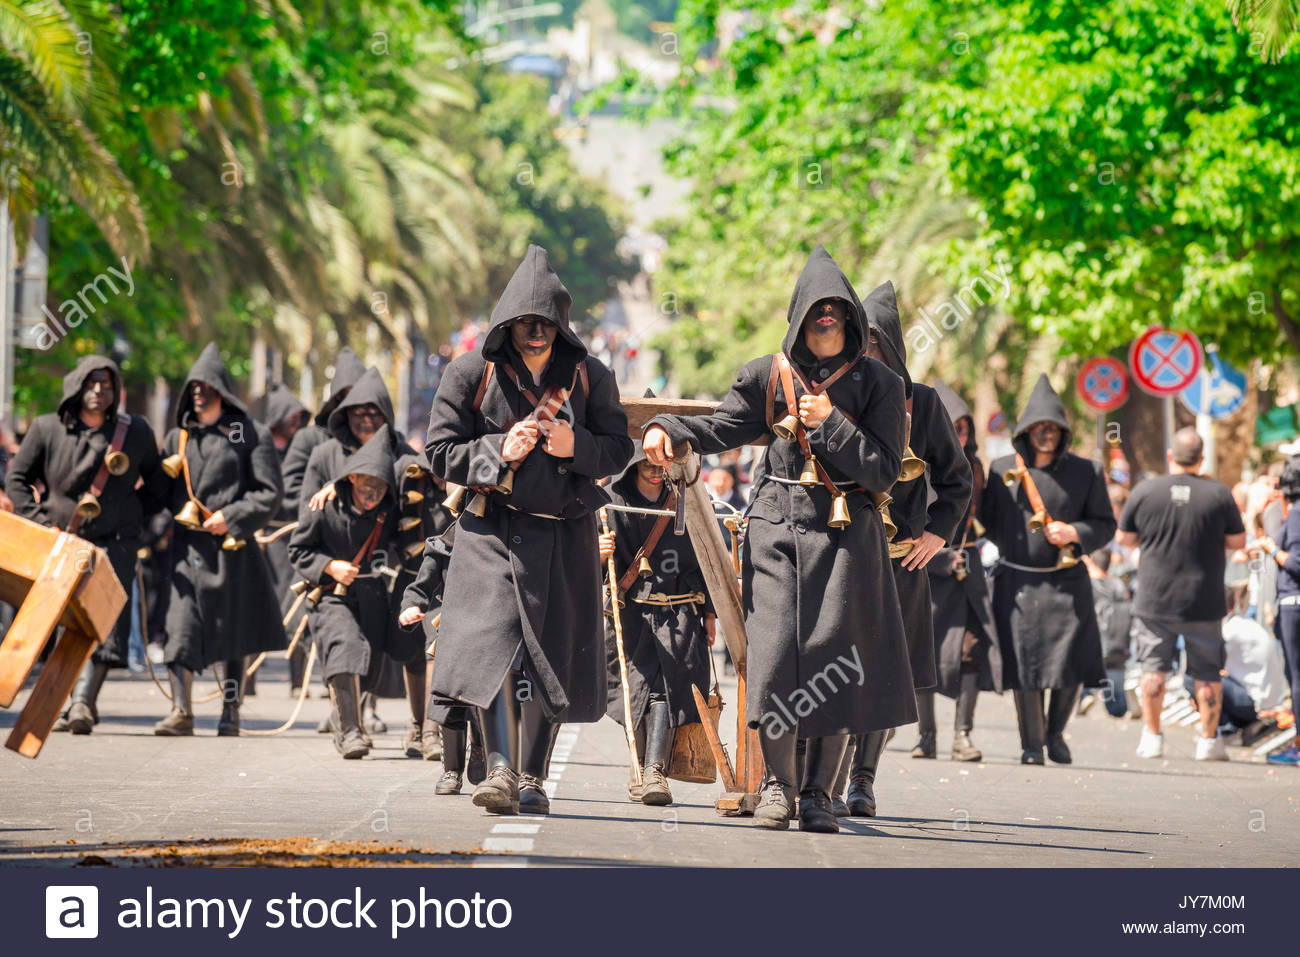 Sardinia festival, procession of the Thurpos or 'blind ones' during the grand parade of the Cavalcata Sarda festival in Sassari, Sardinia. - Stock Image